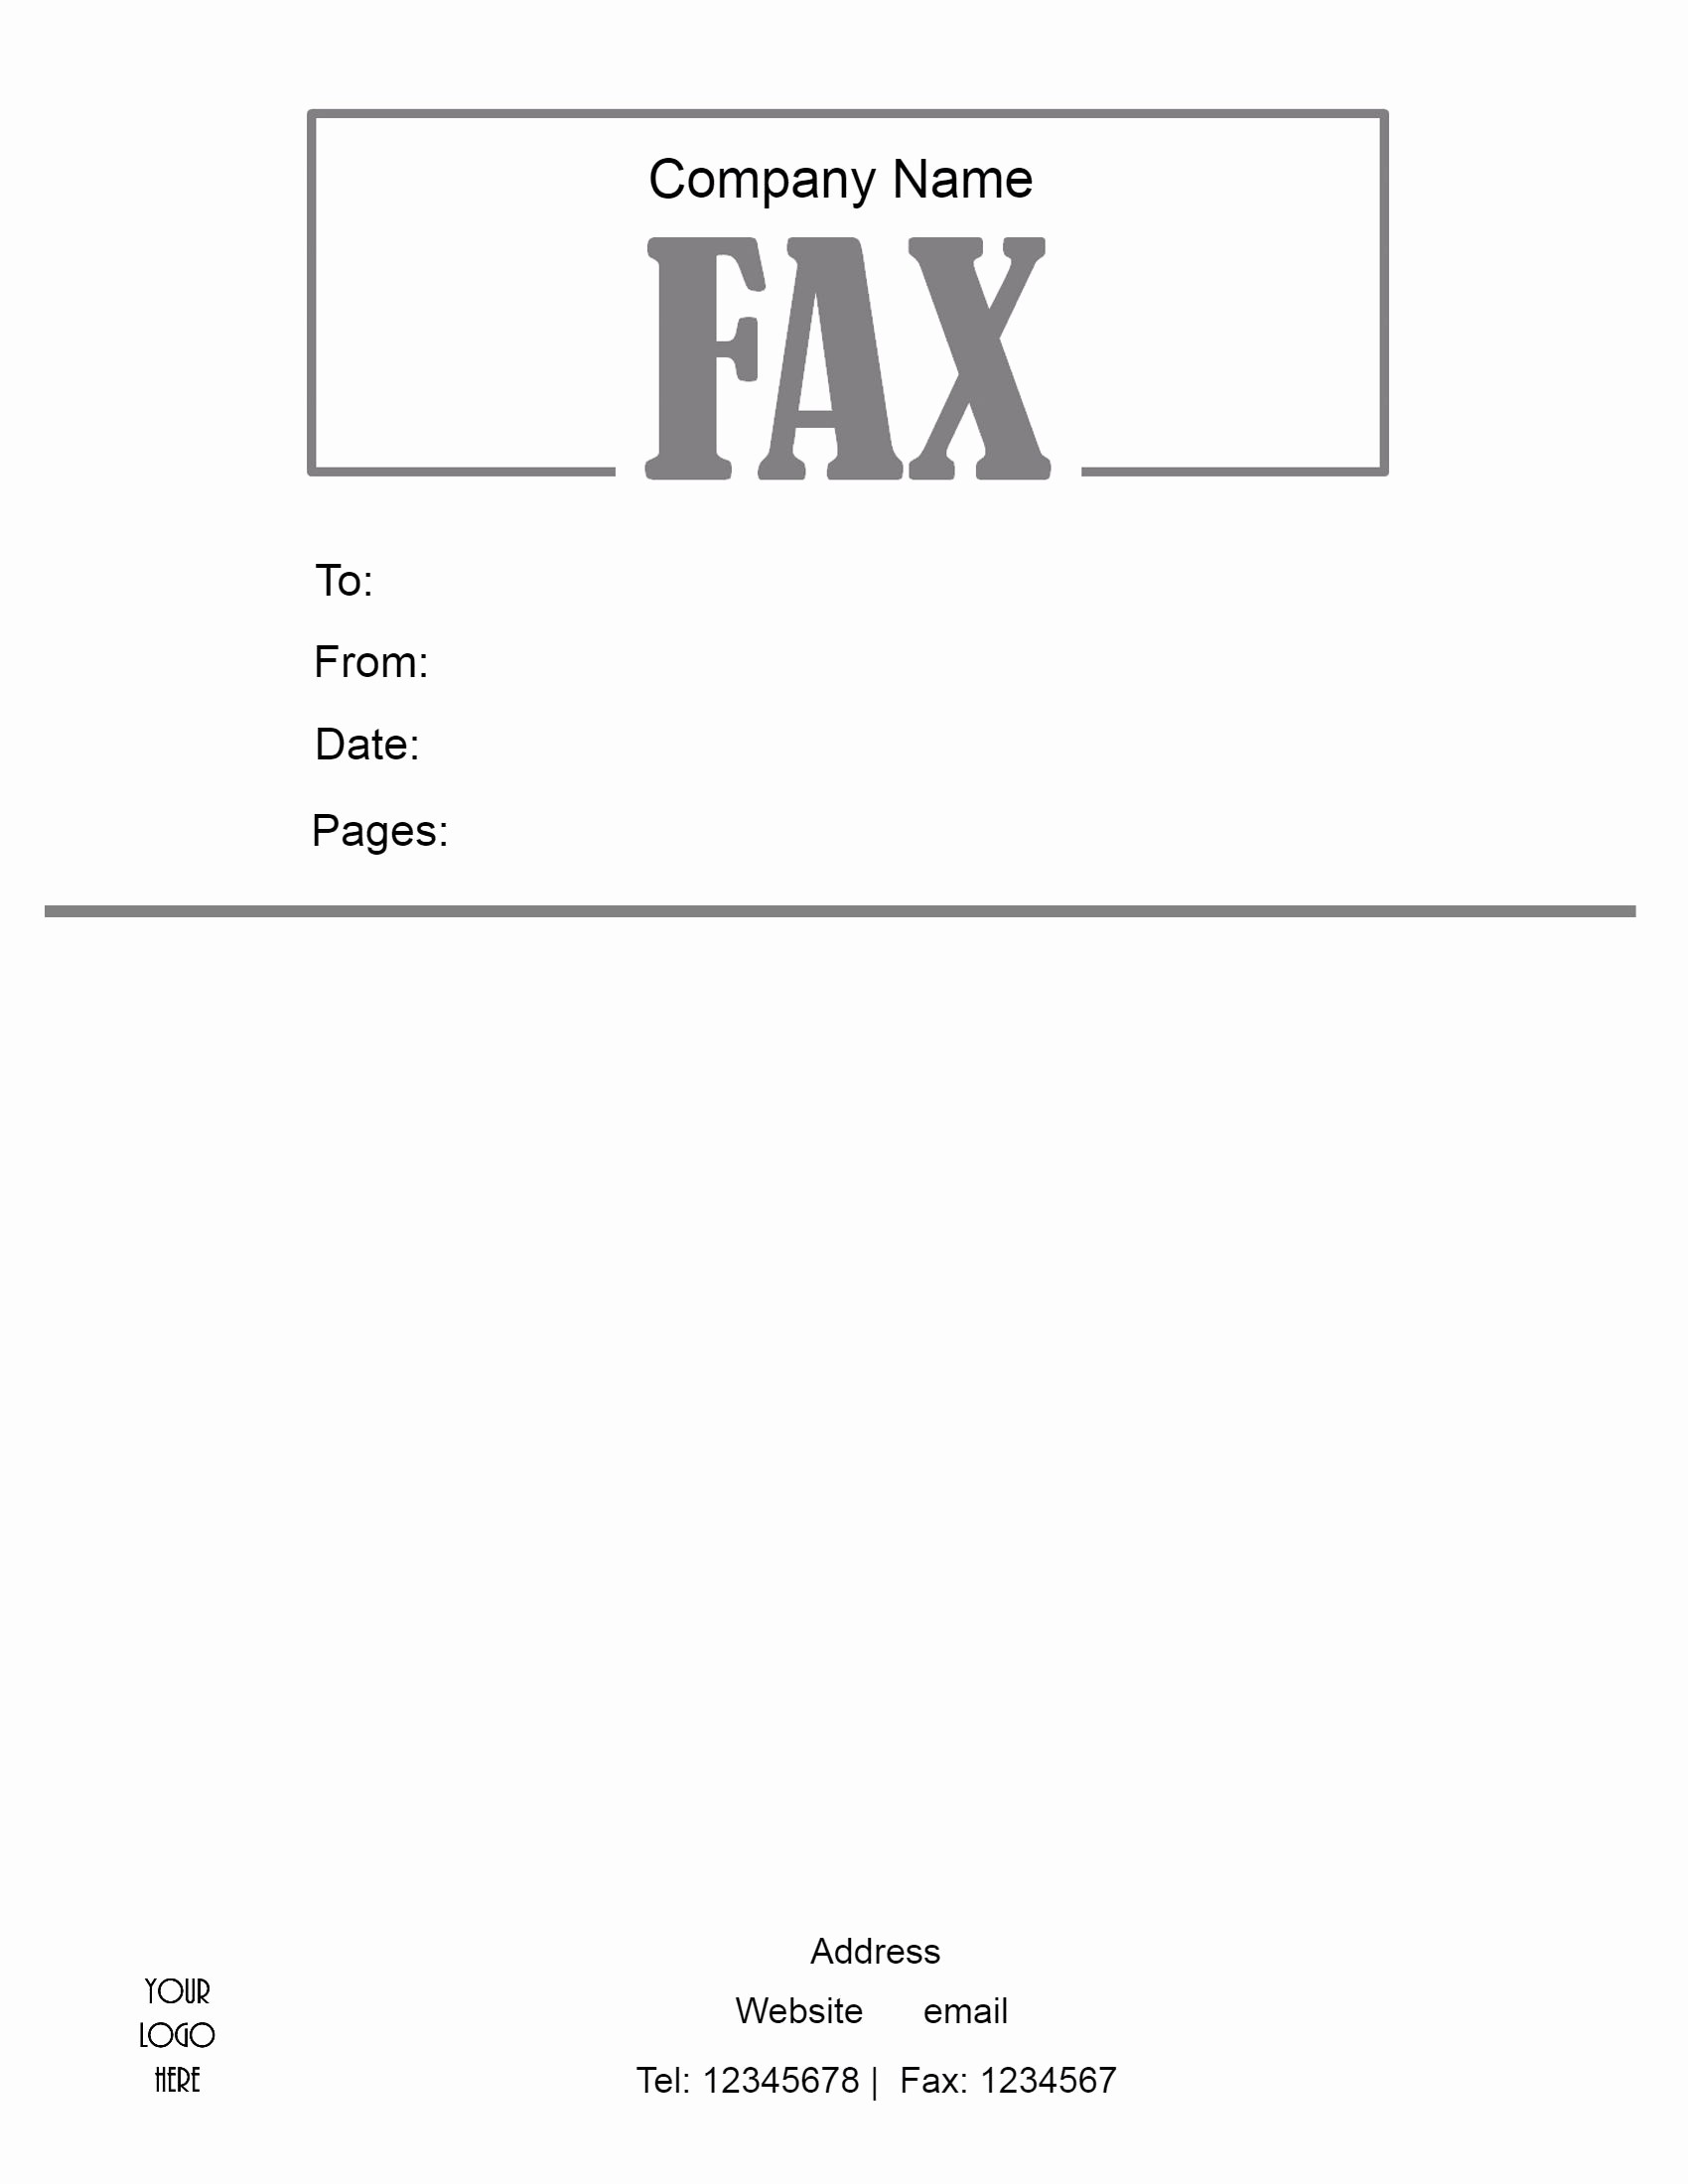 How to Fax Cover Sheet Beautiful Free Fax Cover Sheet Template format Example Pdf Printable